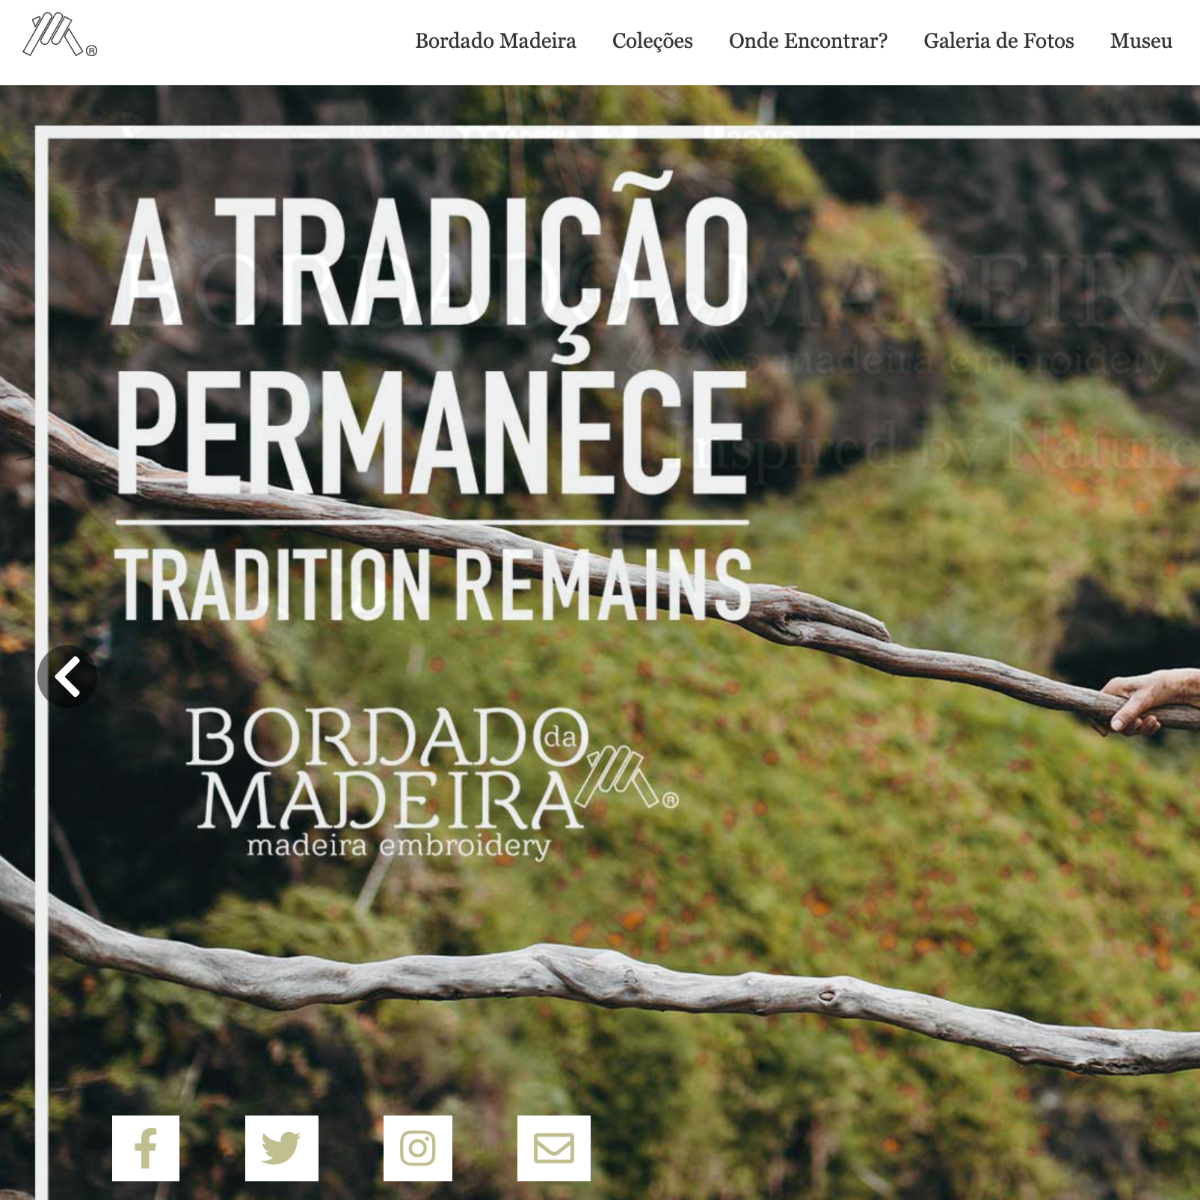 website, award, design, wine, embroidery, madeira